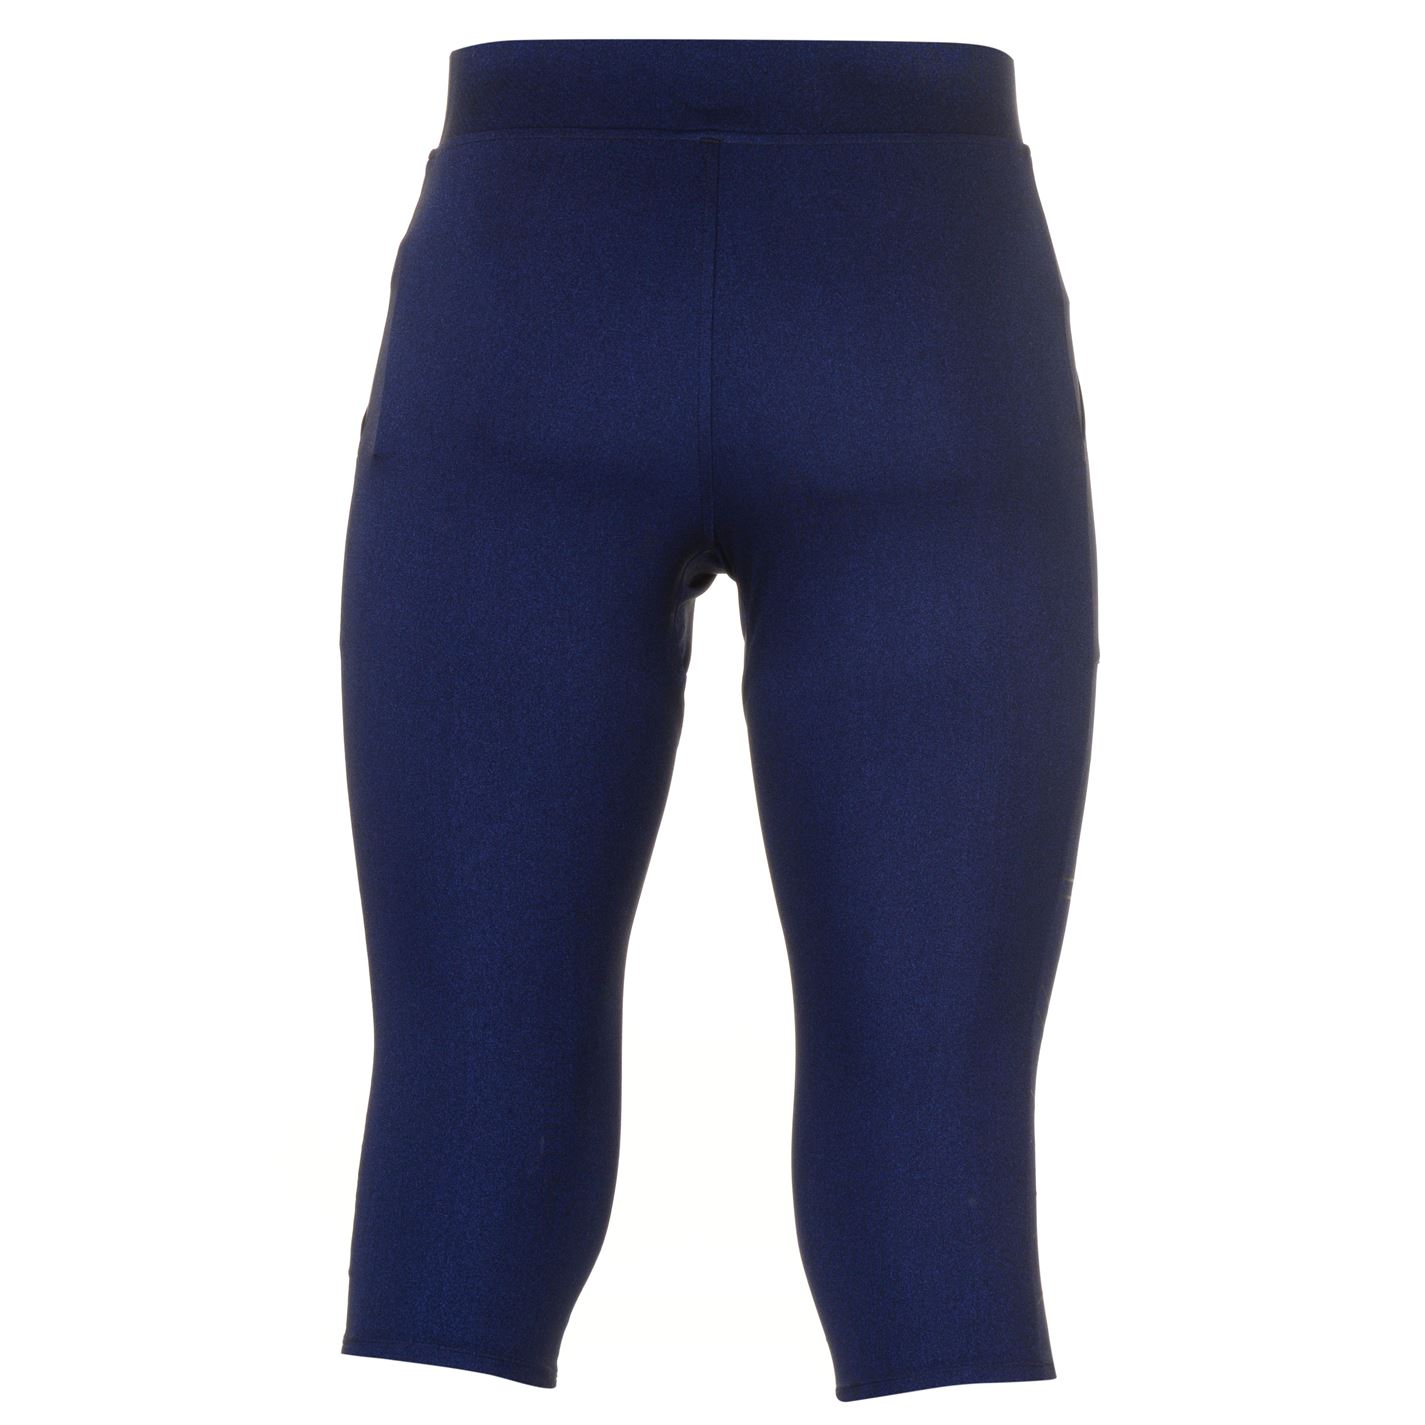 d30f3241e46a4 Under Armour Mens Perpetual Half Tights Baselayer Bottoms Pants ...